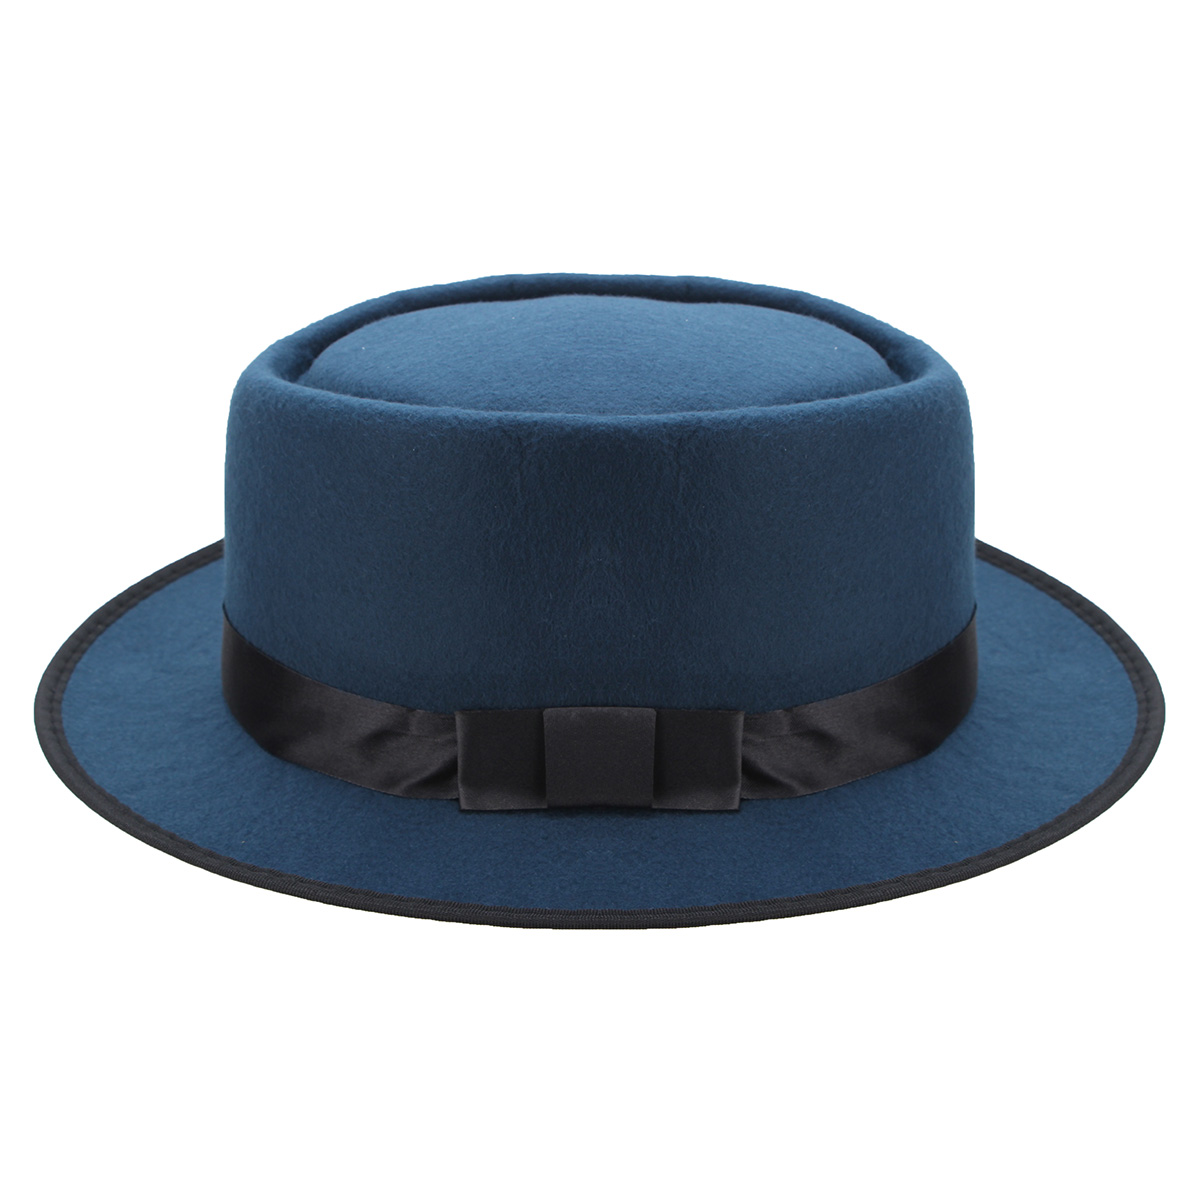 Men Women Porkpie Pork Pie Hats Fedora Upturn Short Brim Black Ribbon Band Caps